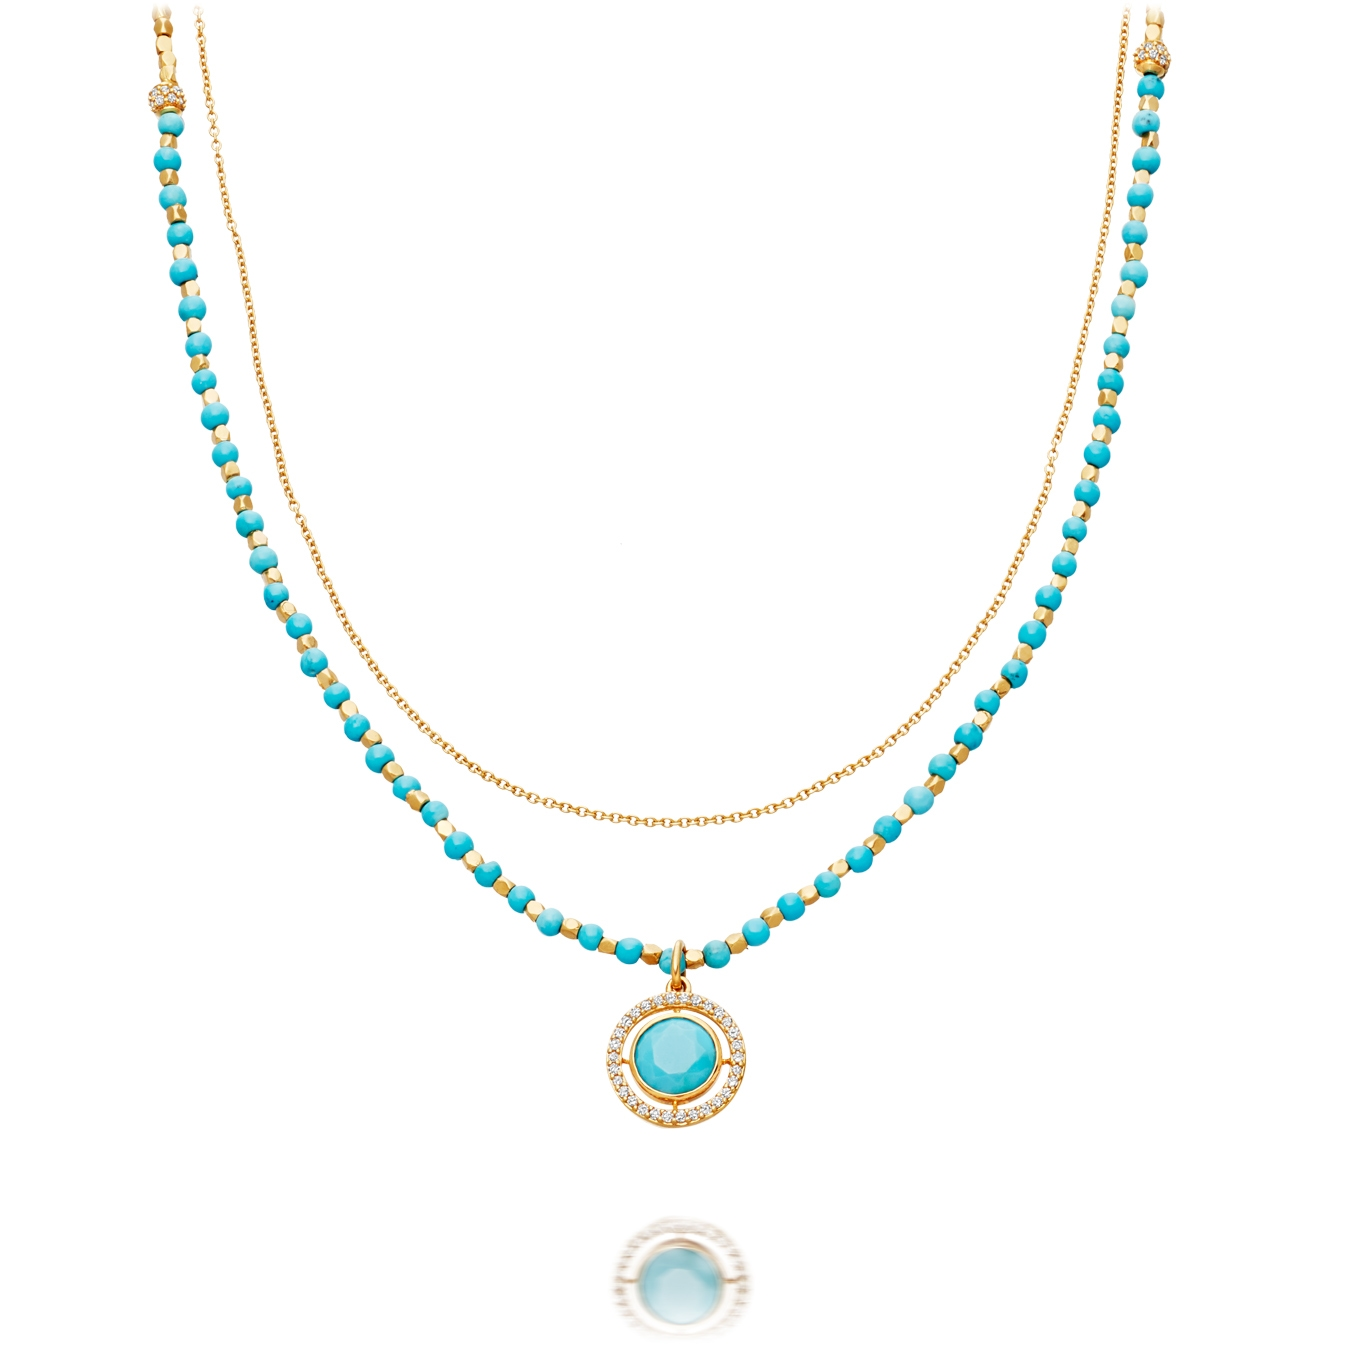 Turquoise Celestial Fine Biography Necklace